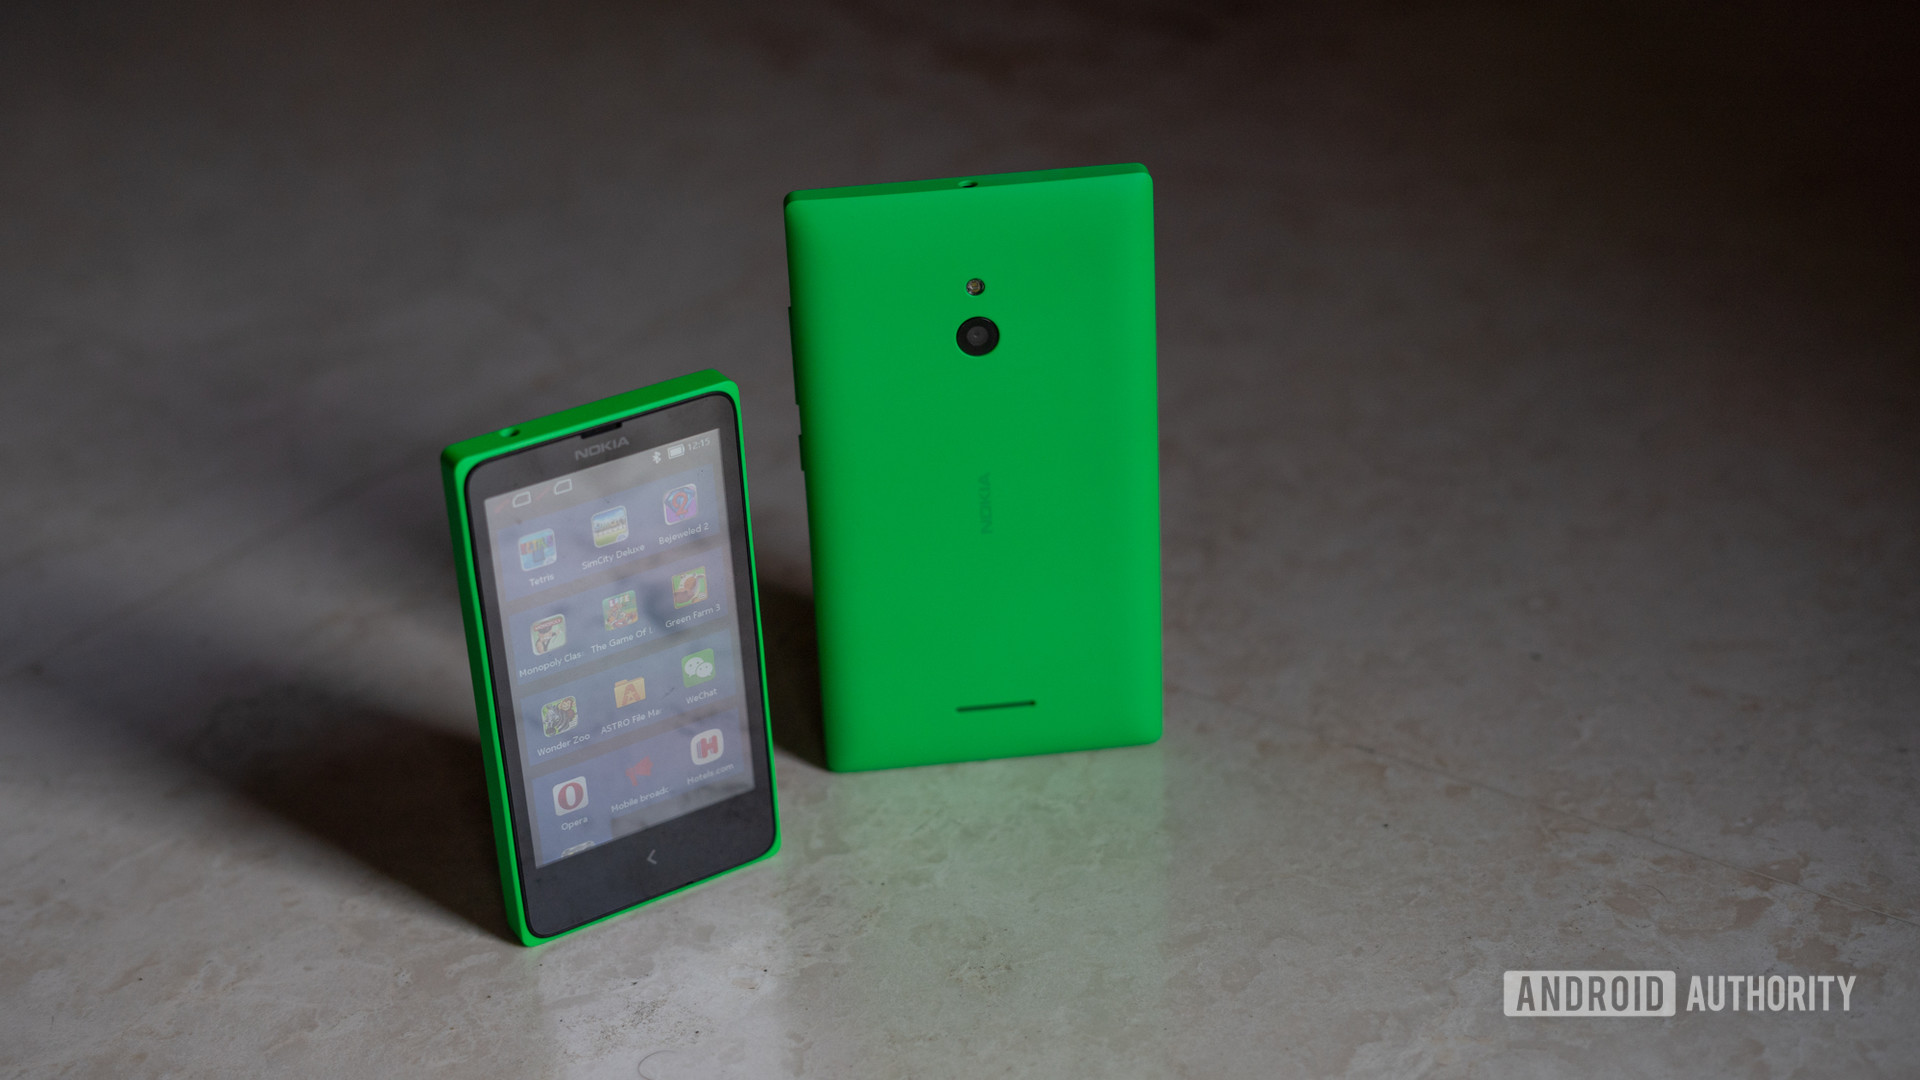 Nokia X Nokia XL profile shot showing front and back